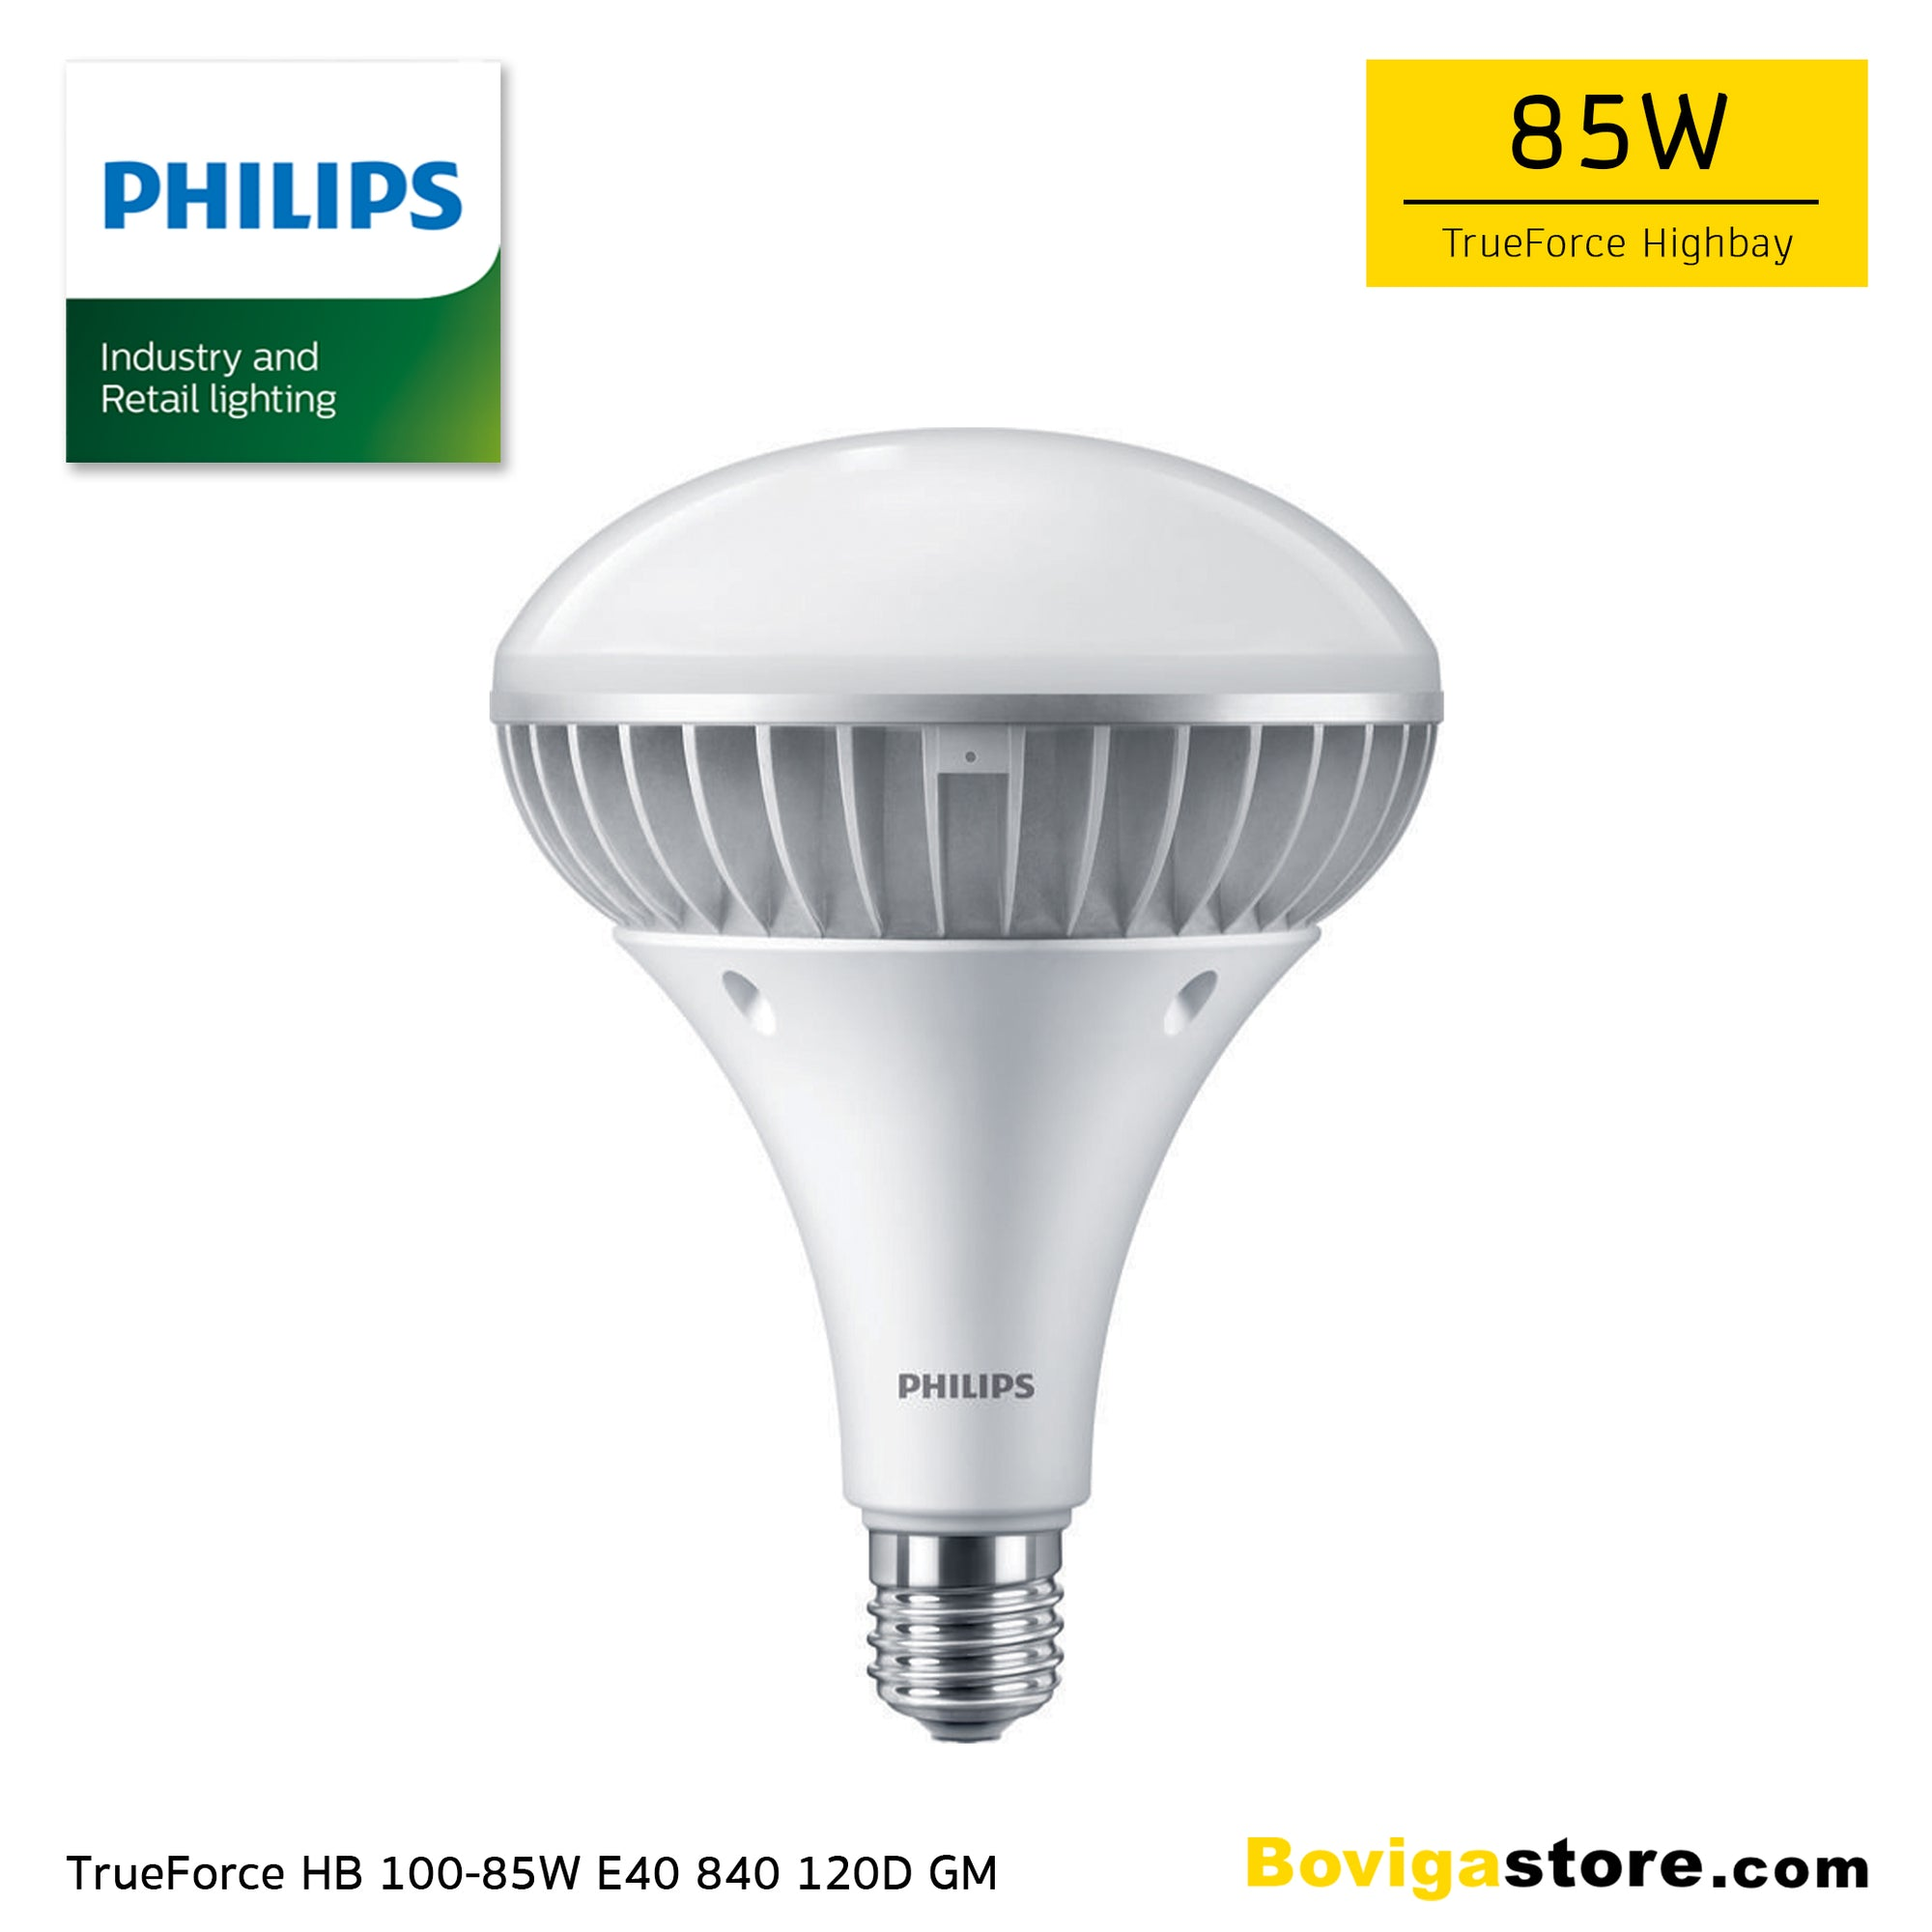 TrueForce LED 100-85W E40 840 120D GM